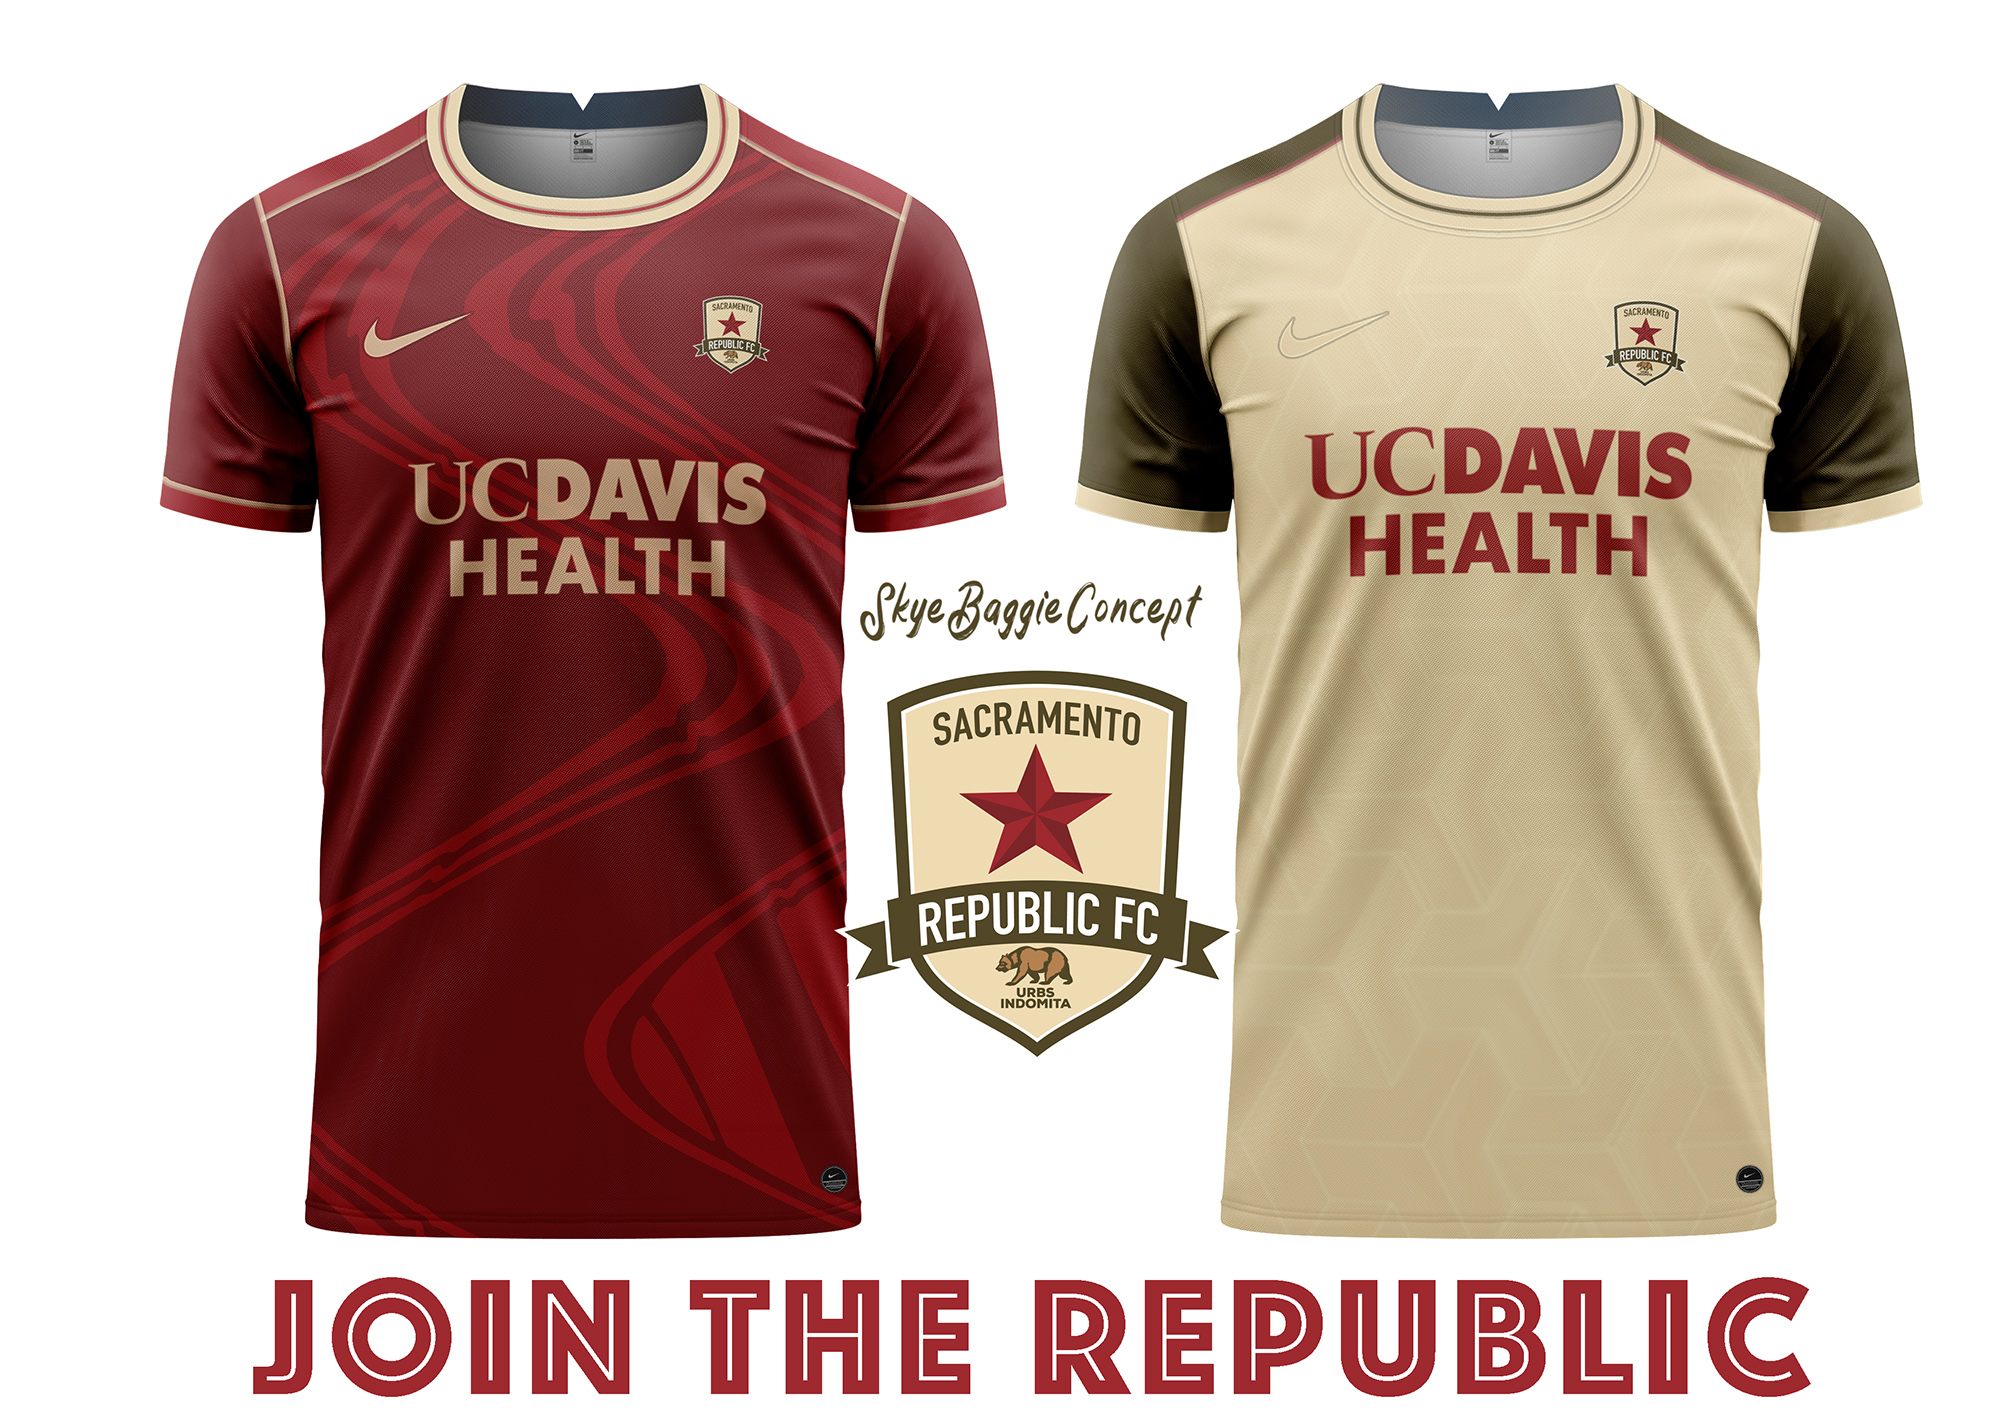 https://www.designfootball.com/images/joomgallery/originals/football_kits_120/sacramento_republic_concept_kits_20200705_1519479726.jpg